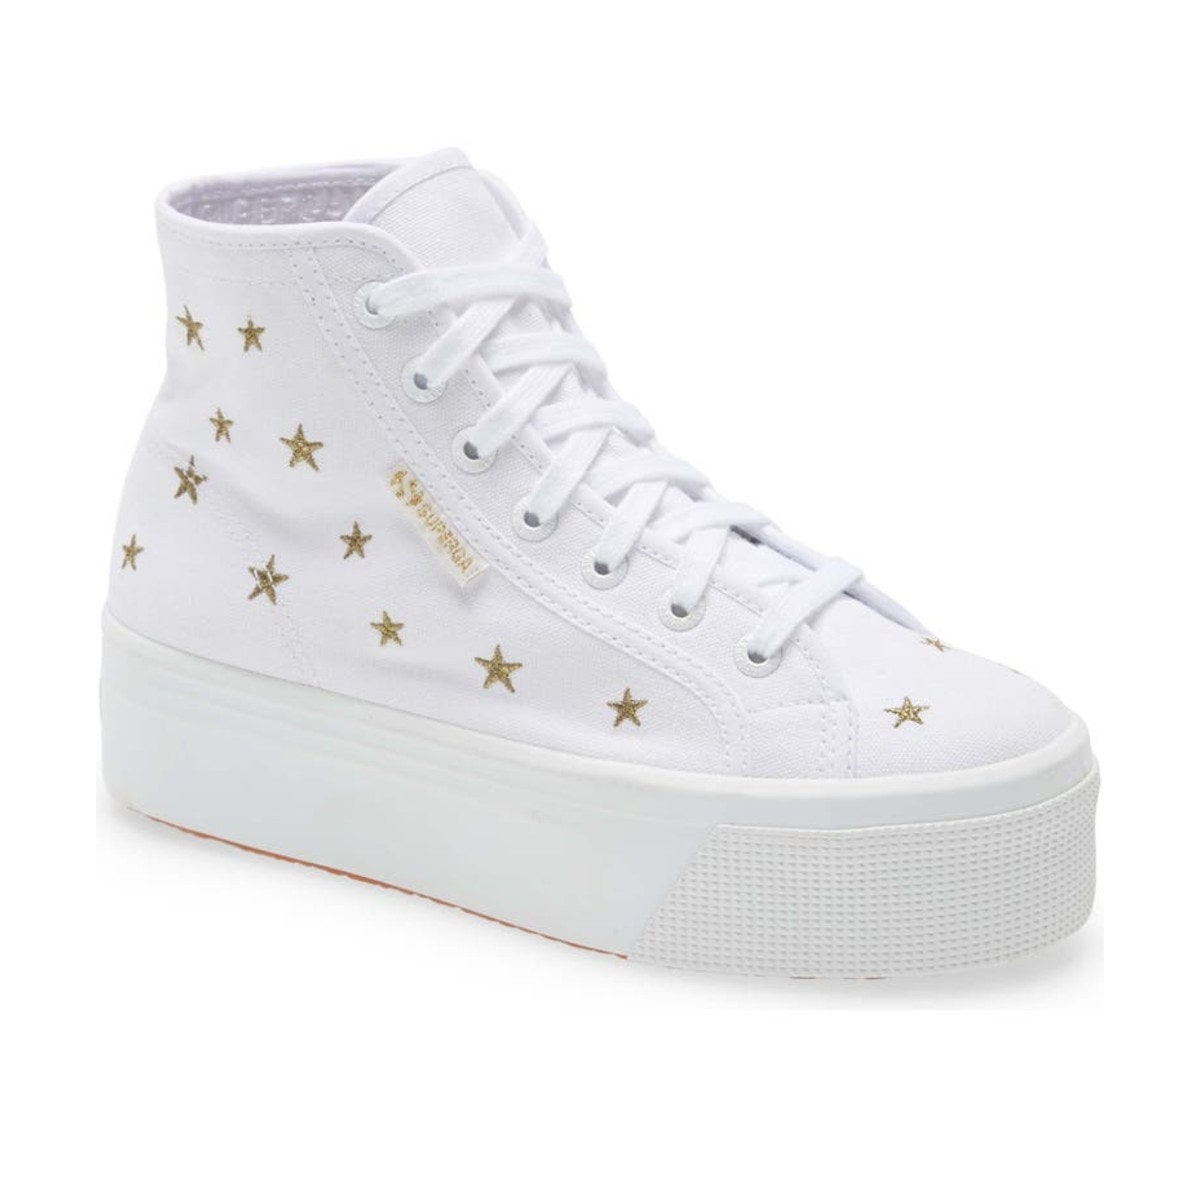 Superga 2705 Star Embroidered Platform High Top Sneakers